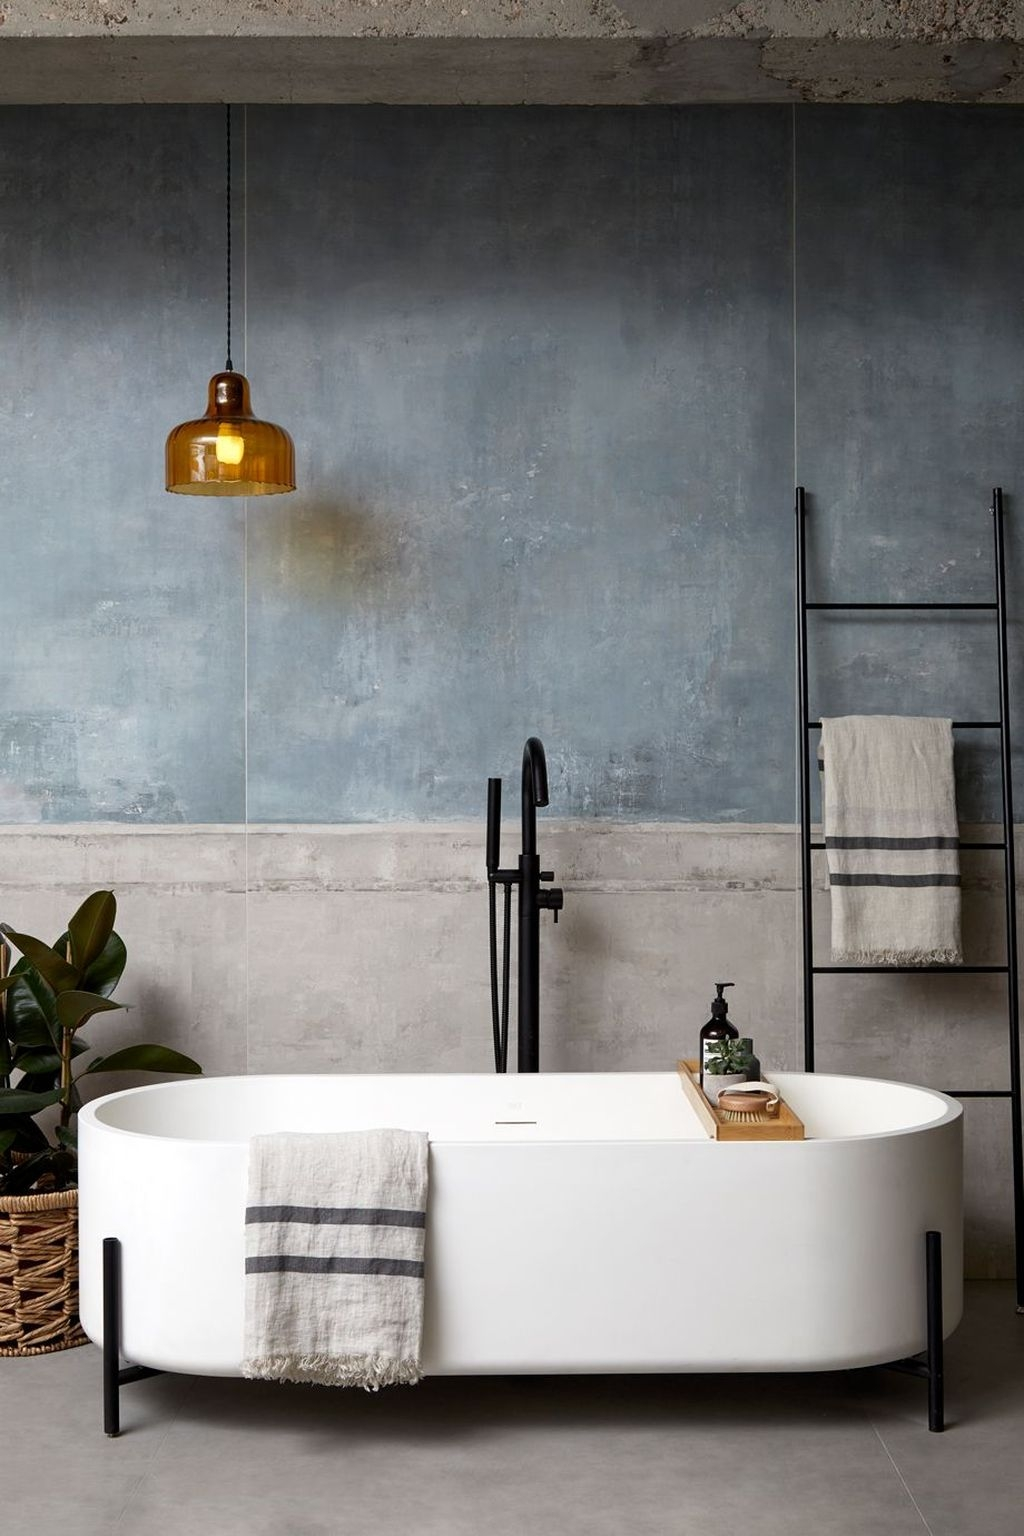 Captivating Bathtub Designs Ideas You Must See29